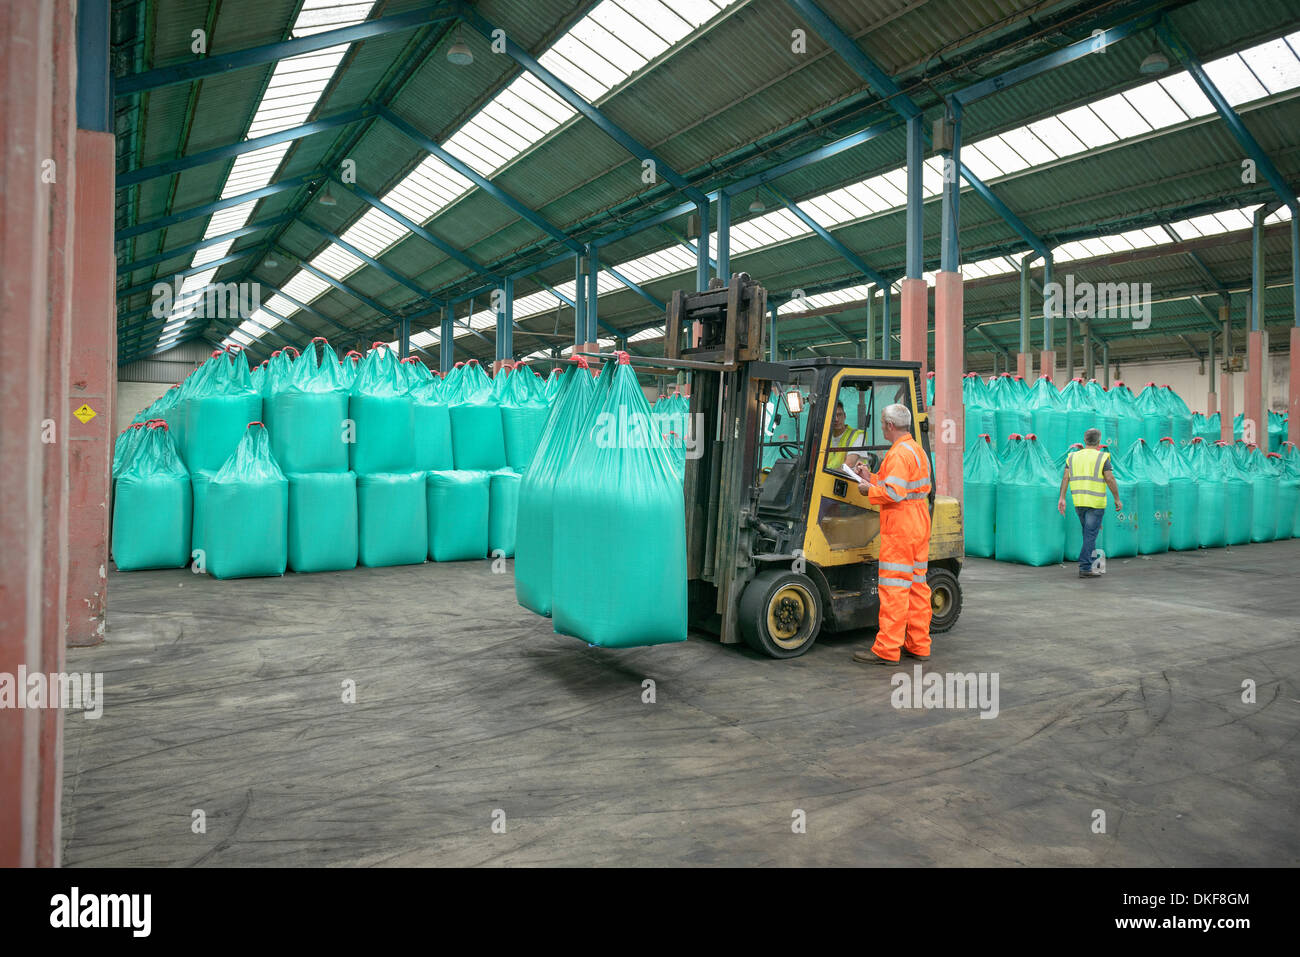 Workers and fork lift truck in bulk fertiliser store in port - Stock Image